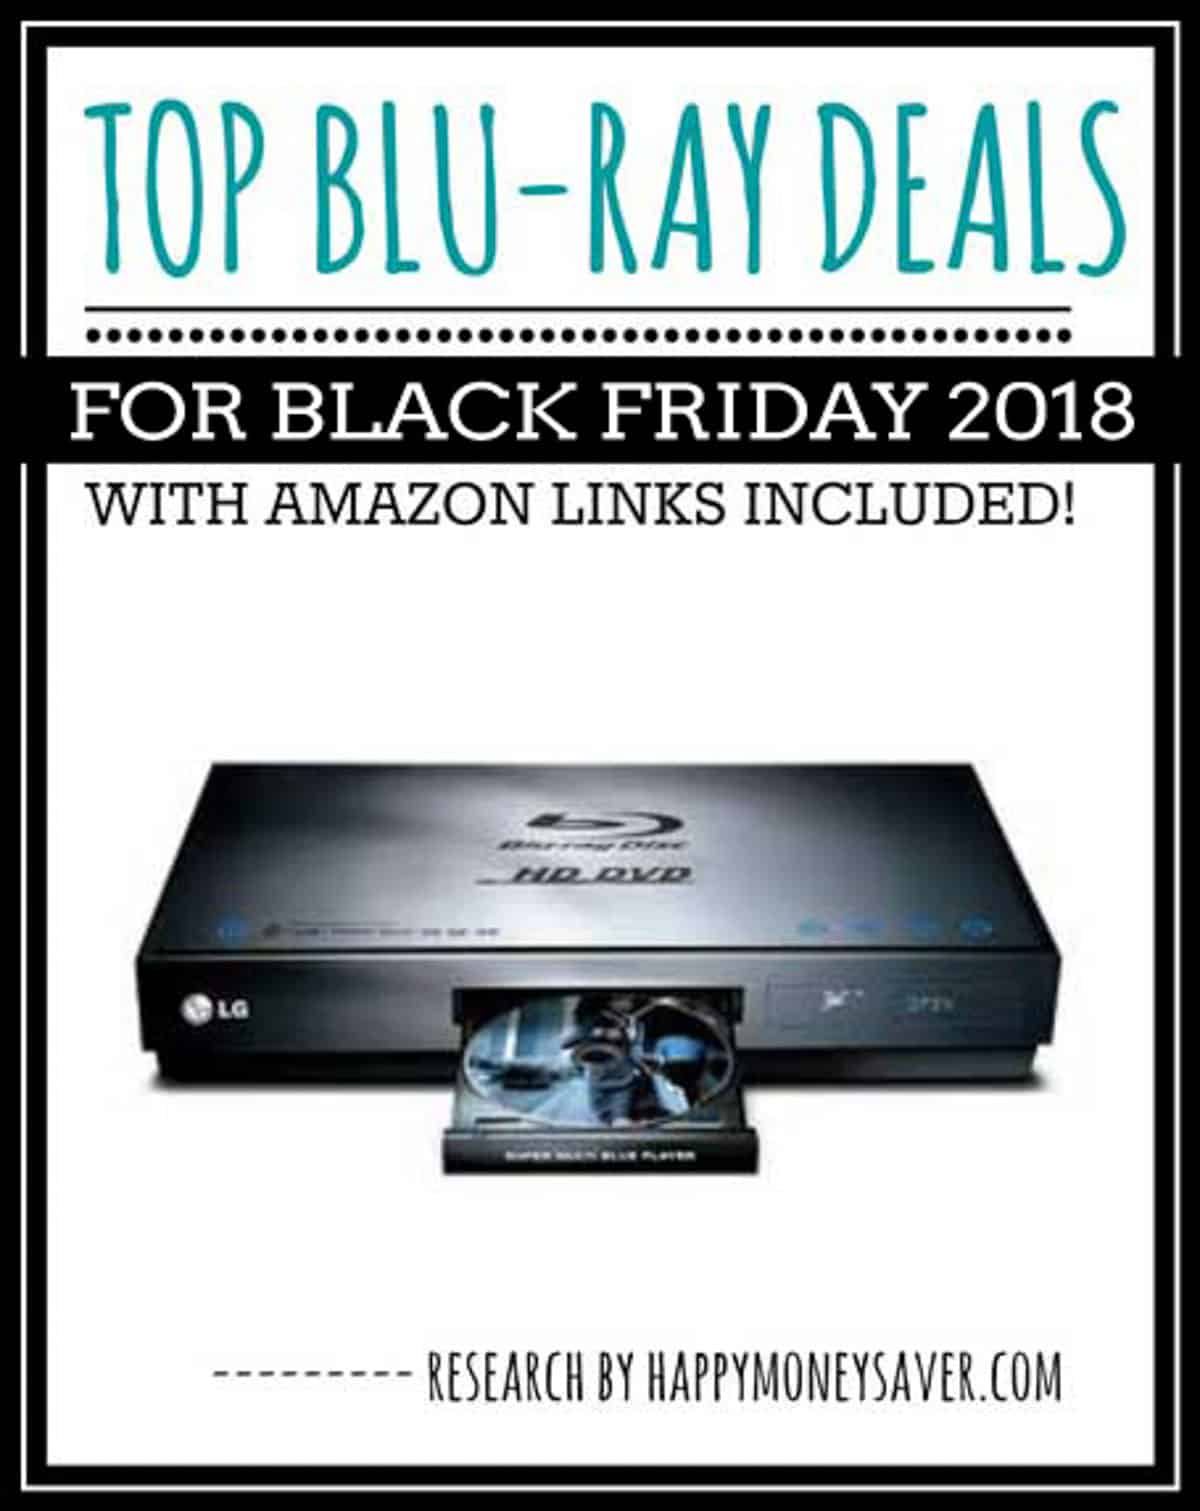 Top Black Friday Deals Online Blu Ray Players for 2018